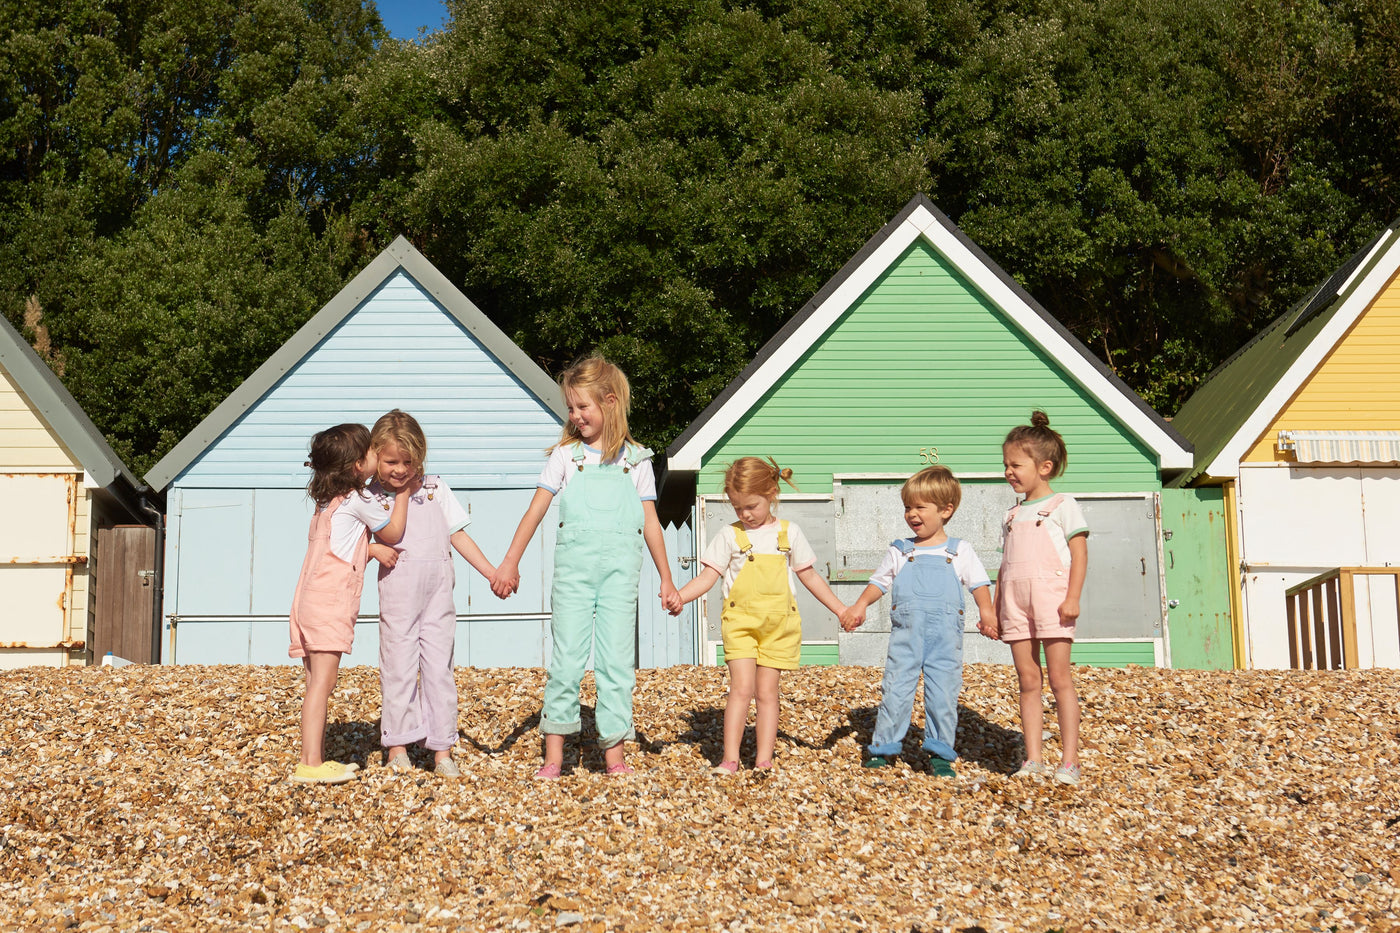 Children in Dotty Dungarees on a beach with colourful beach huts